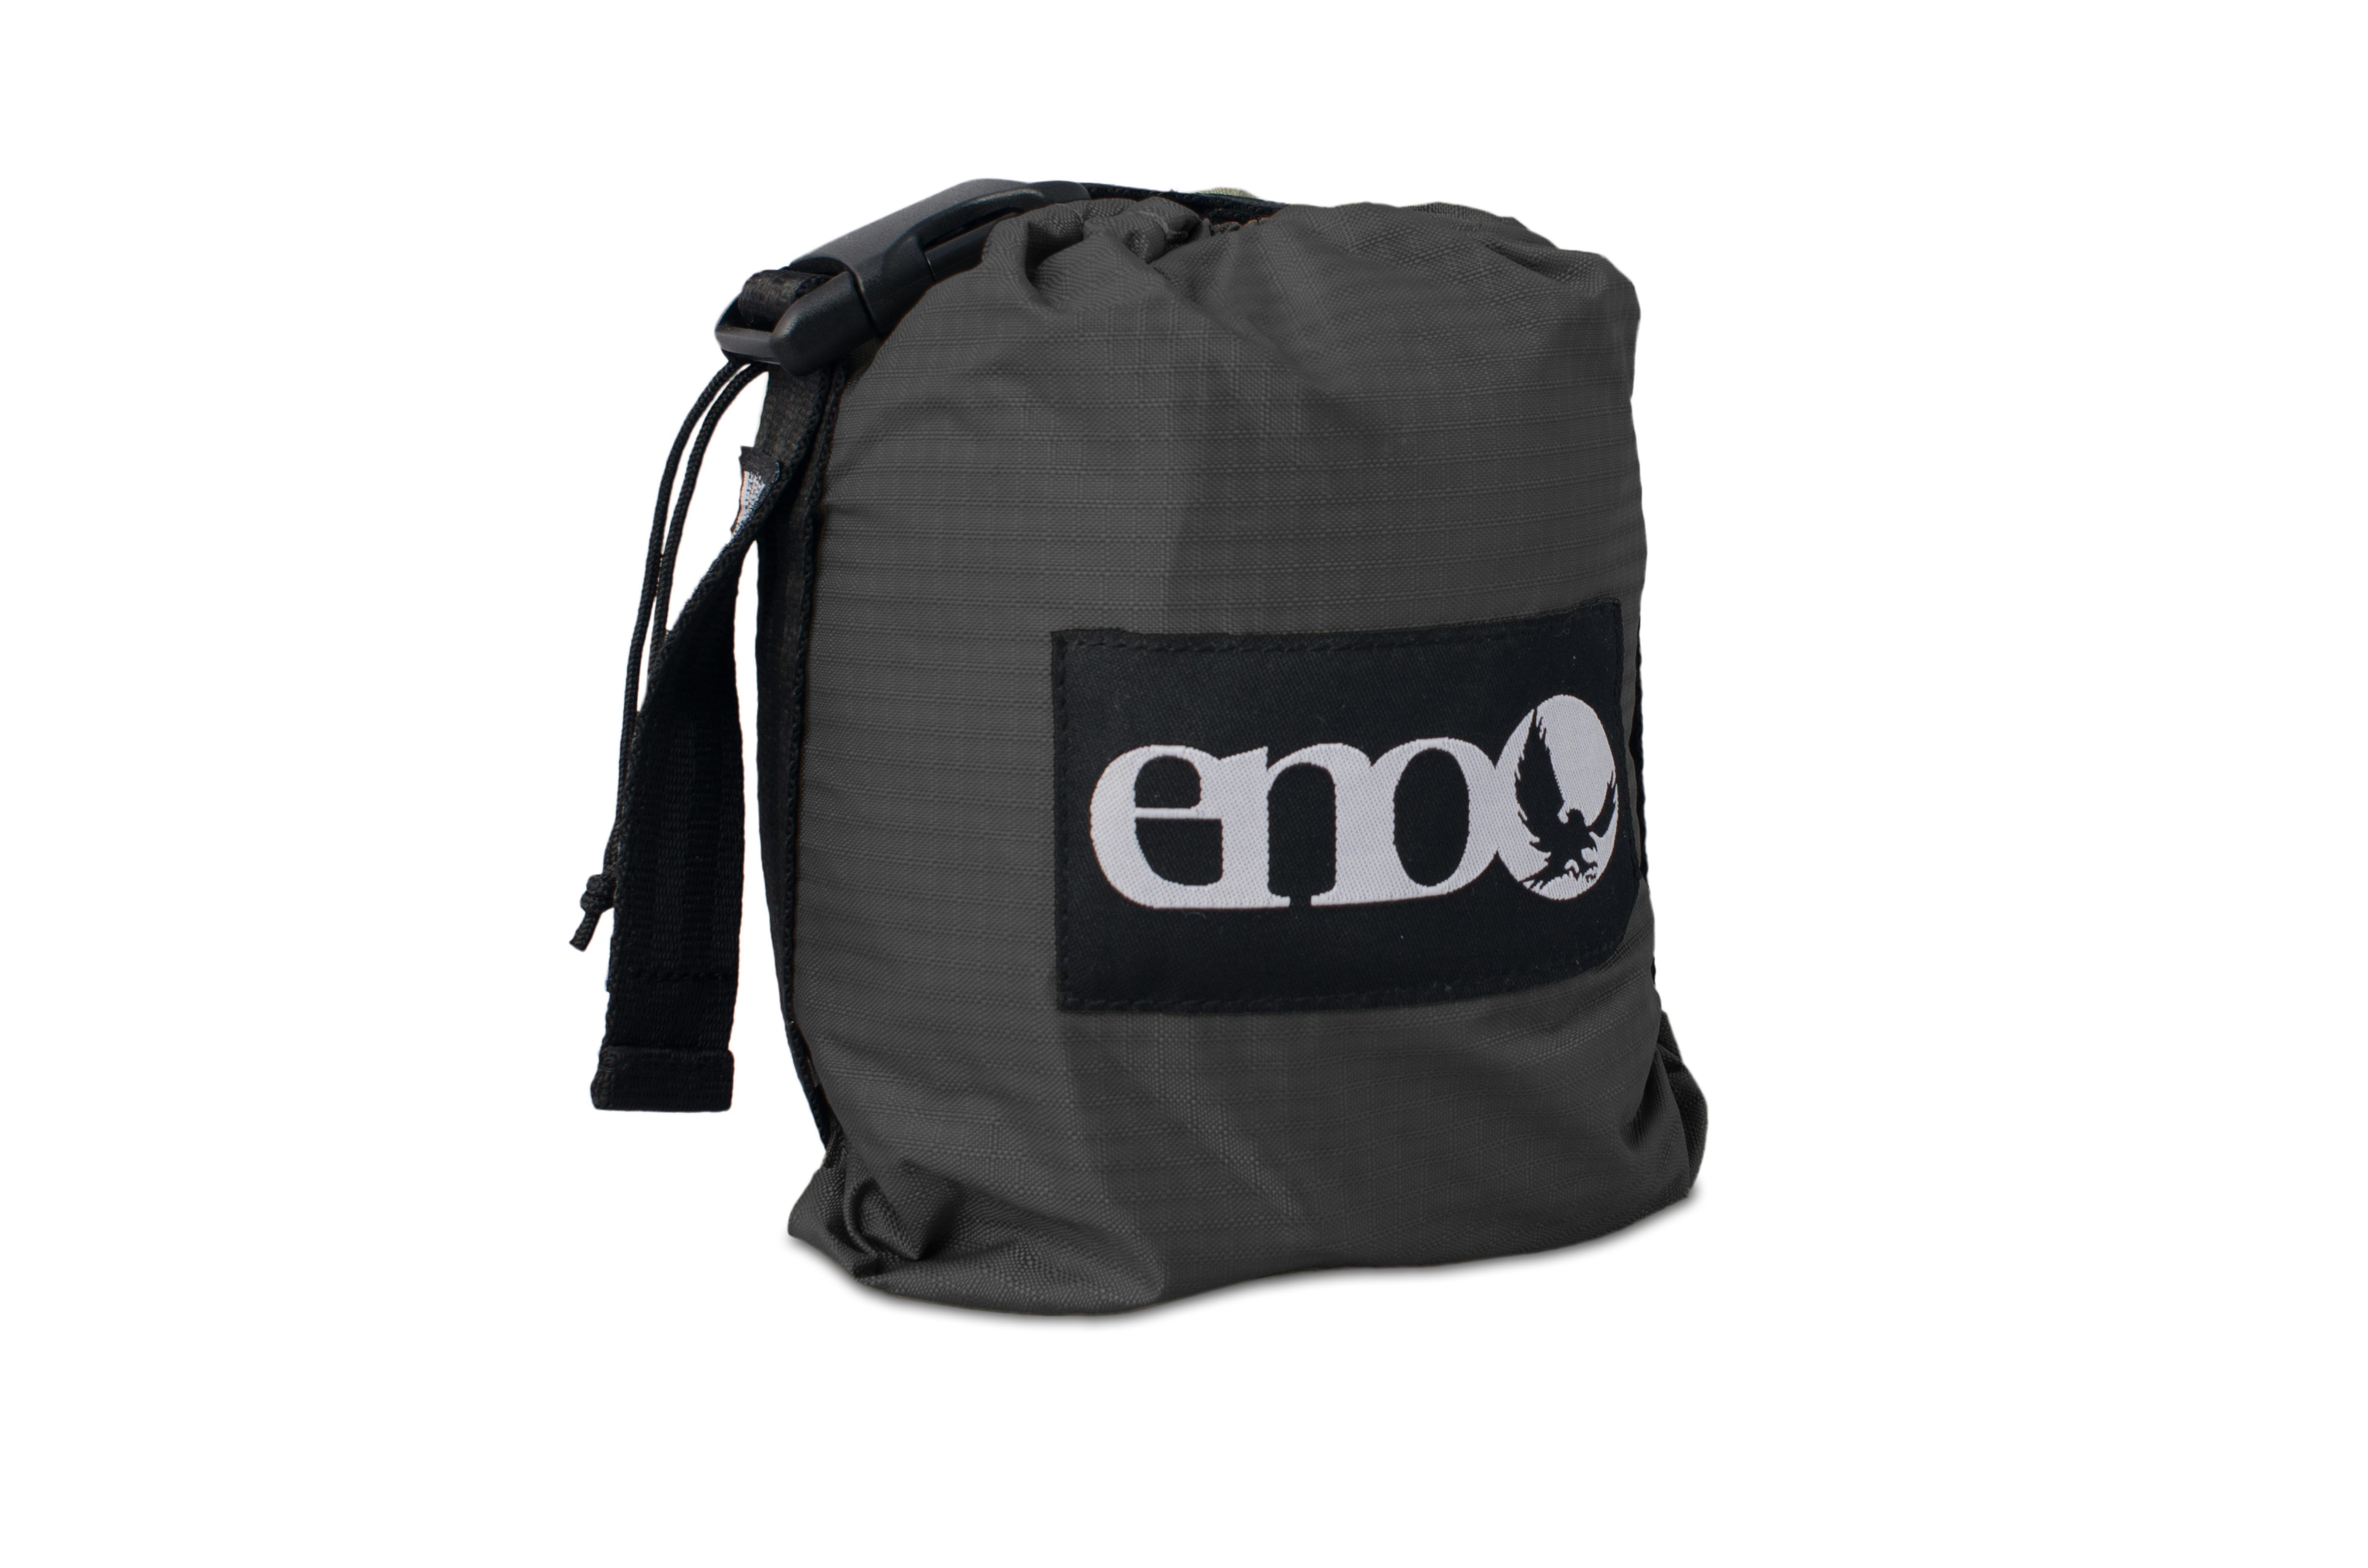 Eagles Nest Outfitters Eno Junglenest Hammock Charcoal